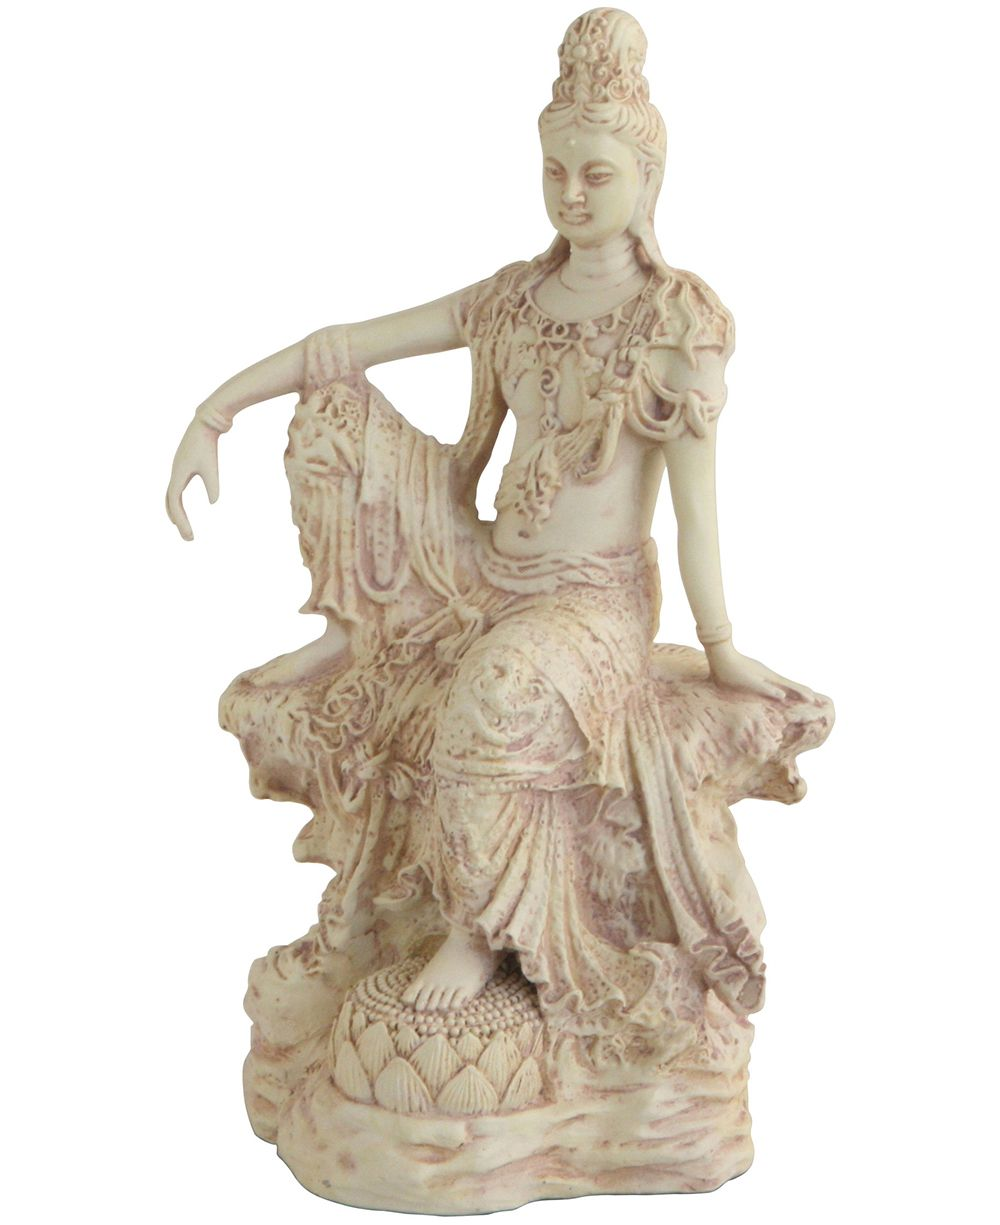 Good Ornate, Ivory Colored Statue Features The Beloved Figure, Kuan Yin,  Elegantly Seated Atop A Pedestal. 10.5 Inches.